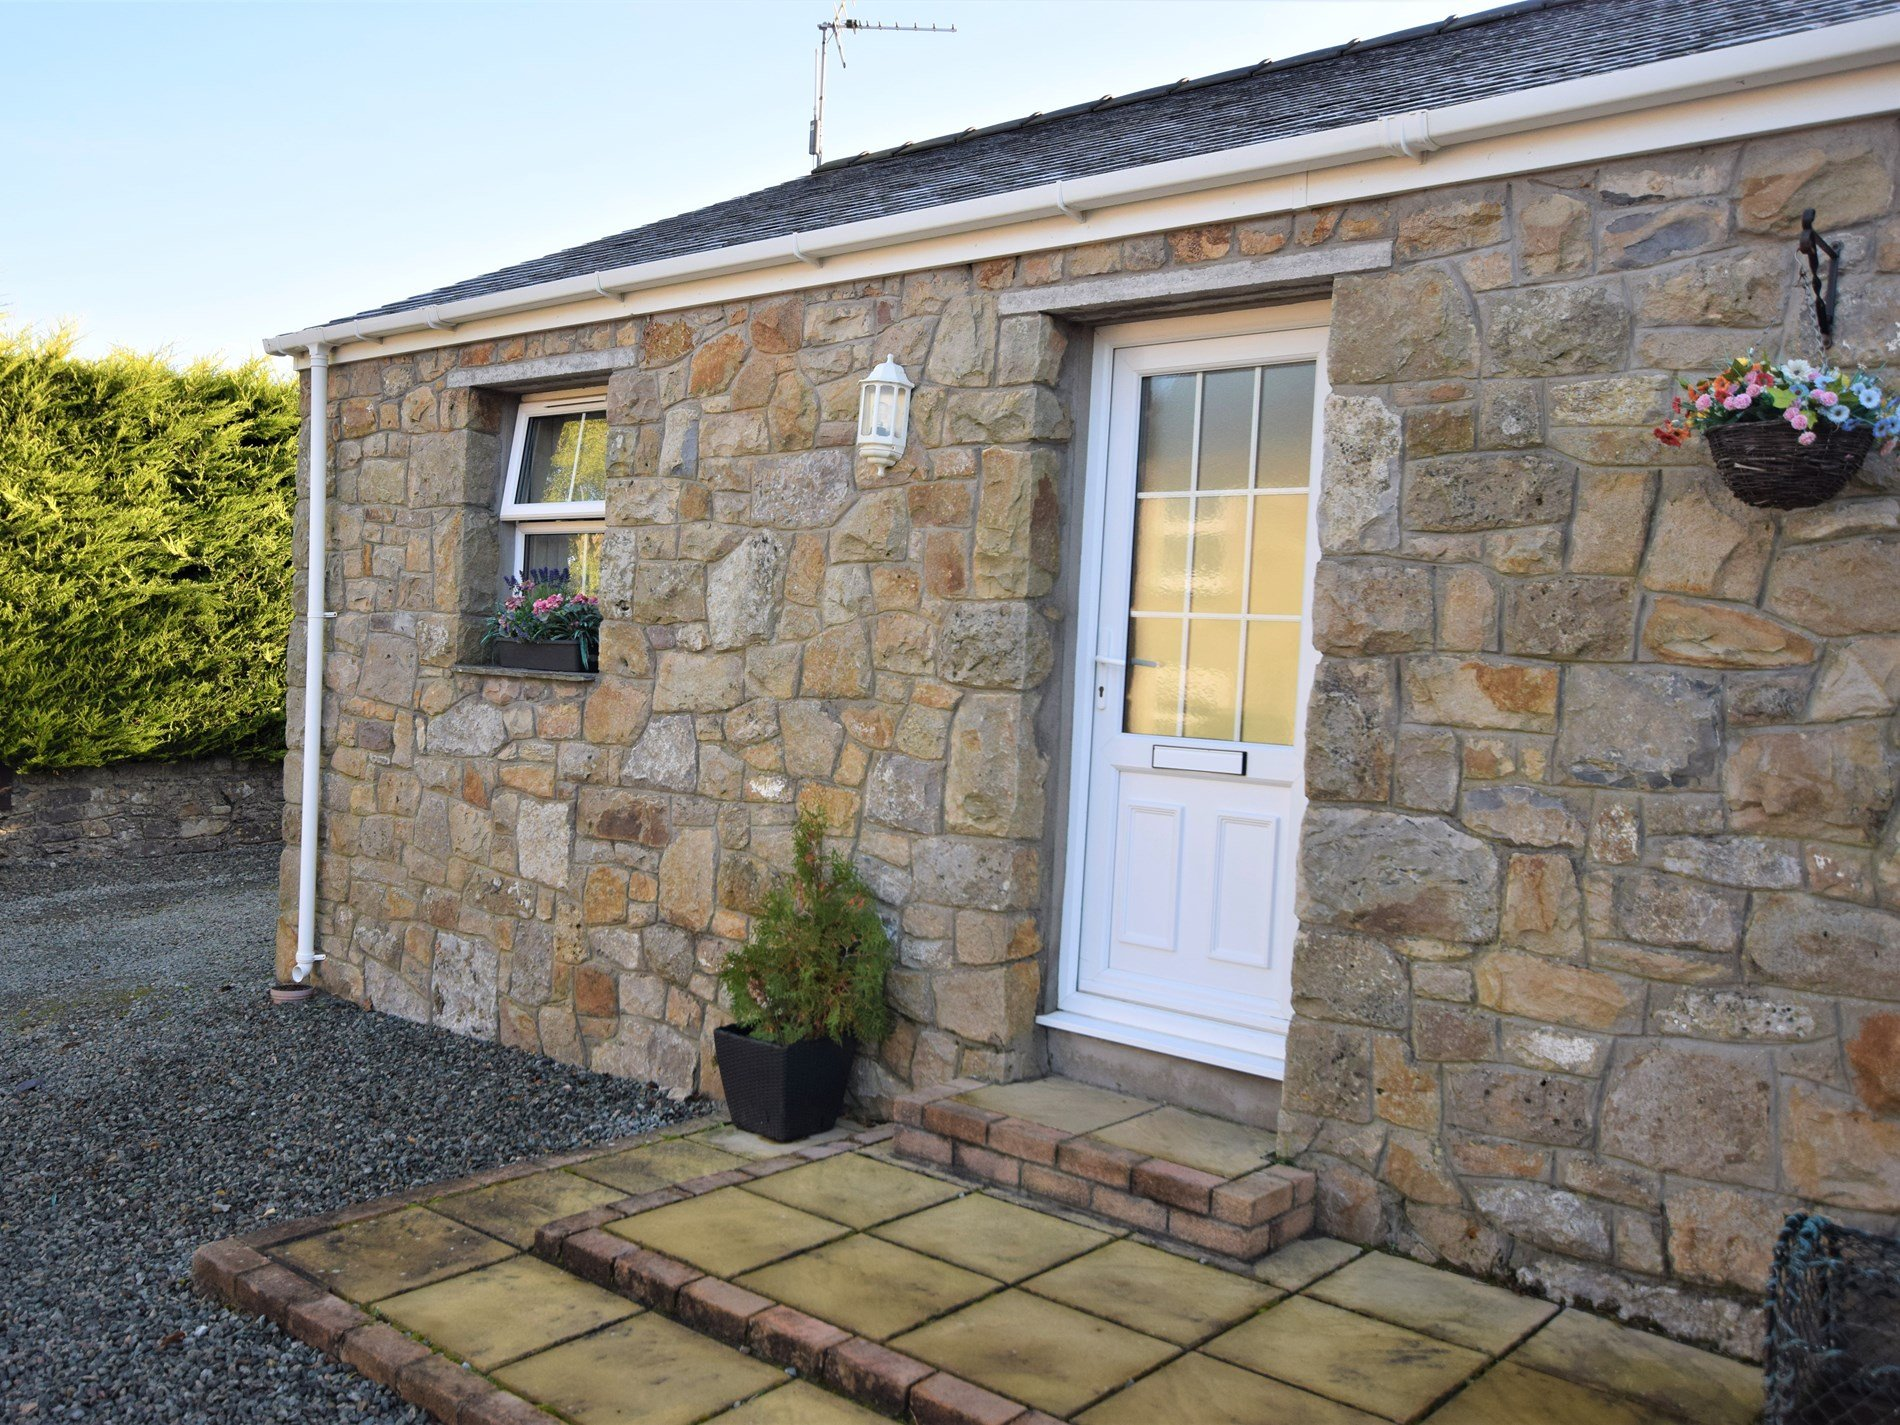 2 Bedroom Cottage in Tyn-y-gongl, Snowdonia, North Wales and Cheshire